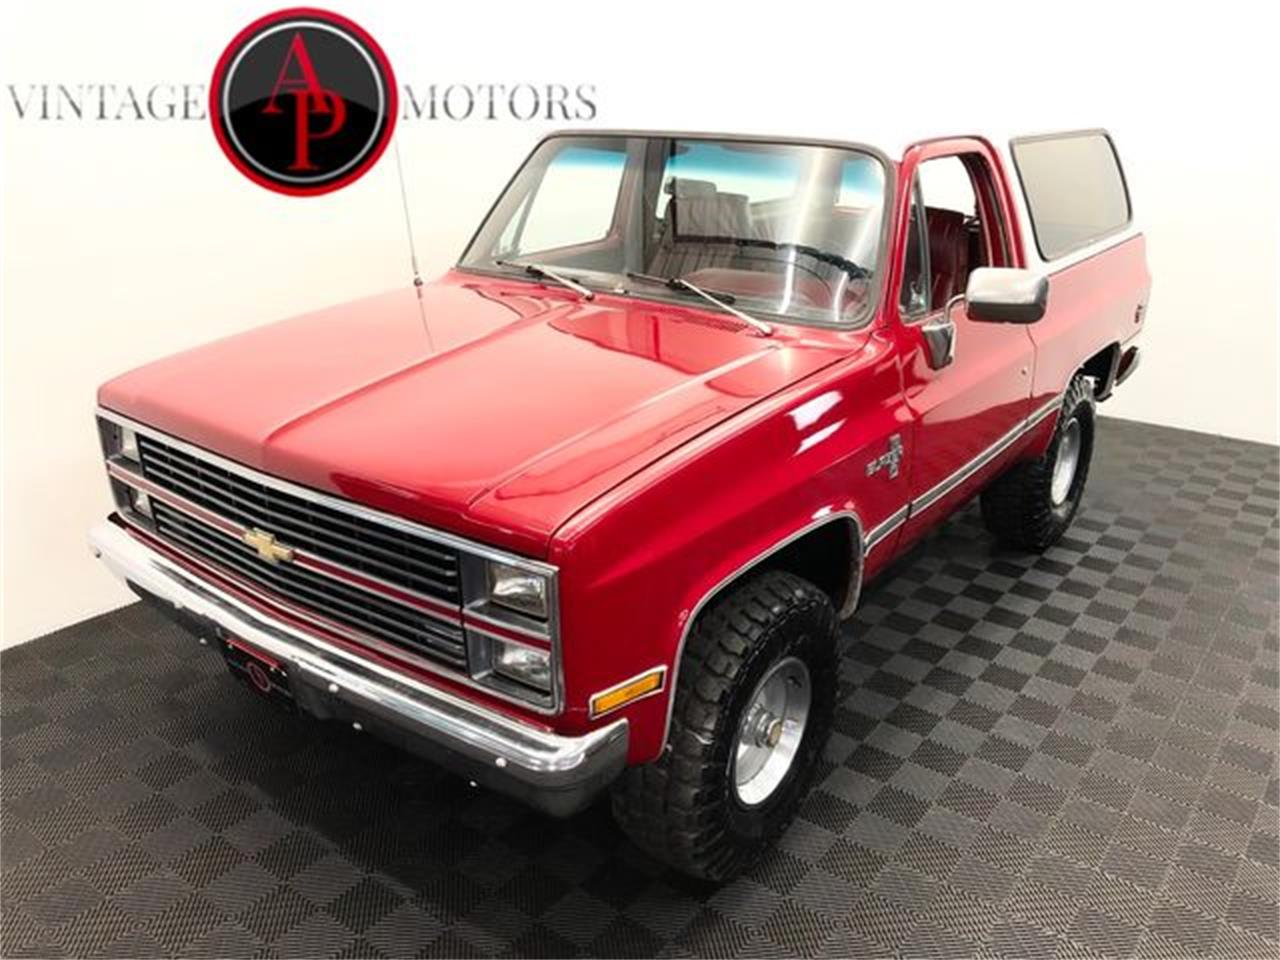 1983 Chevrolet Blazer (CC-1410829) for sale in Statesville, North Carolina